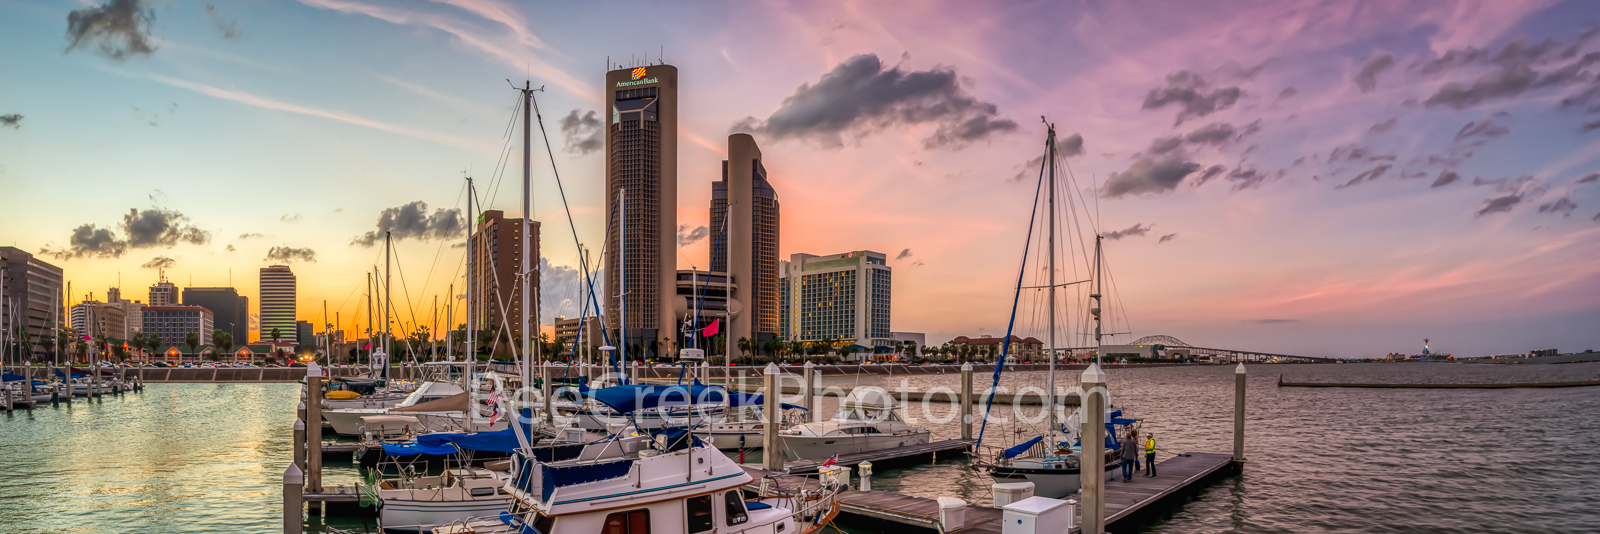 Corpus Christi Sunset Pano - This photo was taken from the other side of the marina looking back at the Corpus Christi skyline...